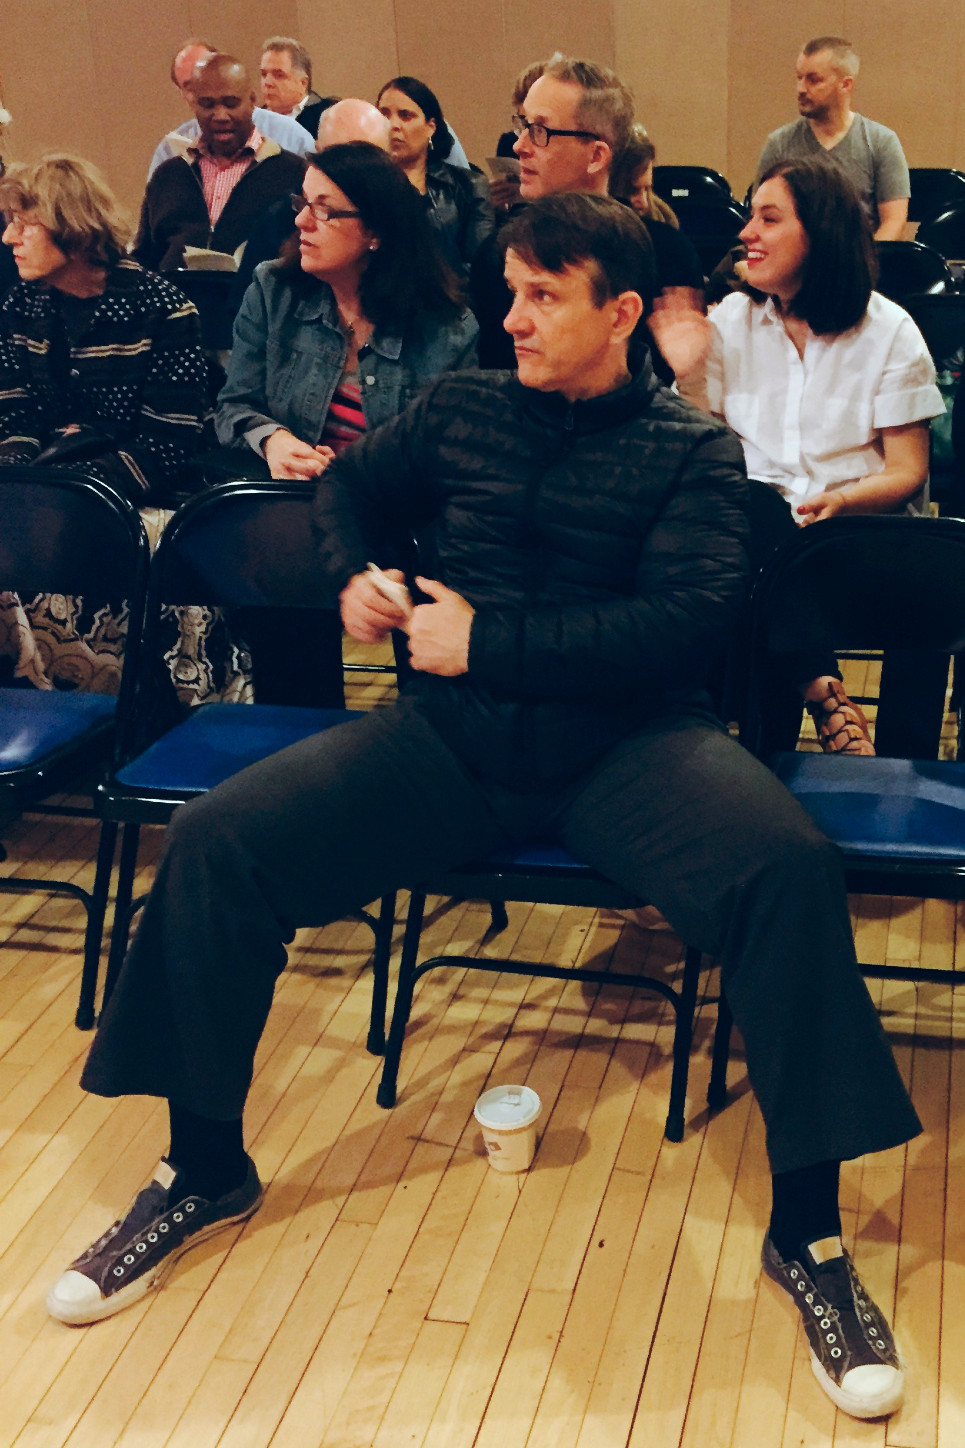 extreme manspreading in the front row at a play in NYC